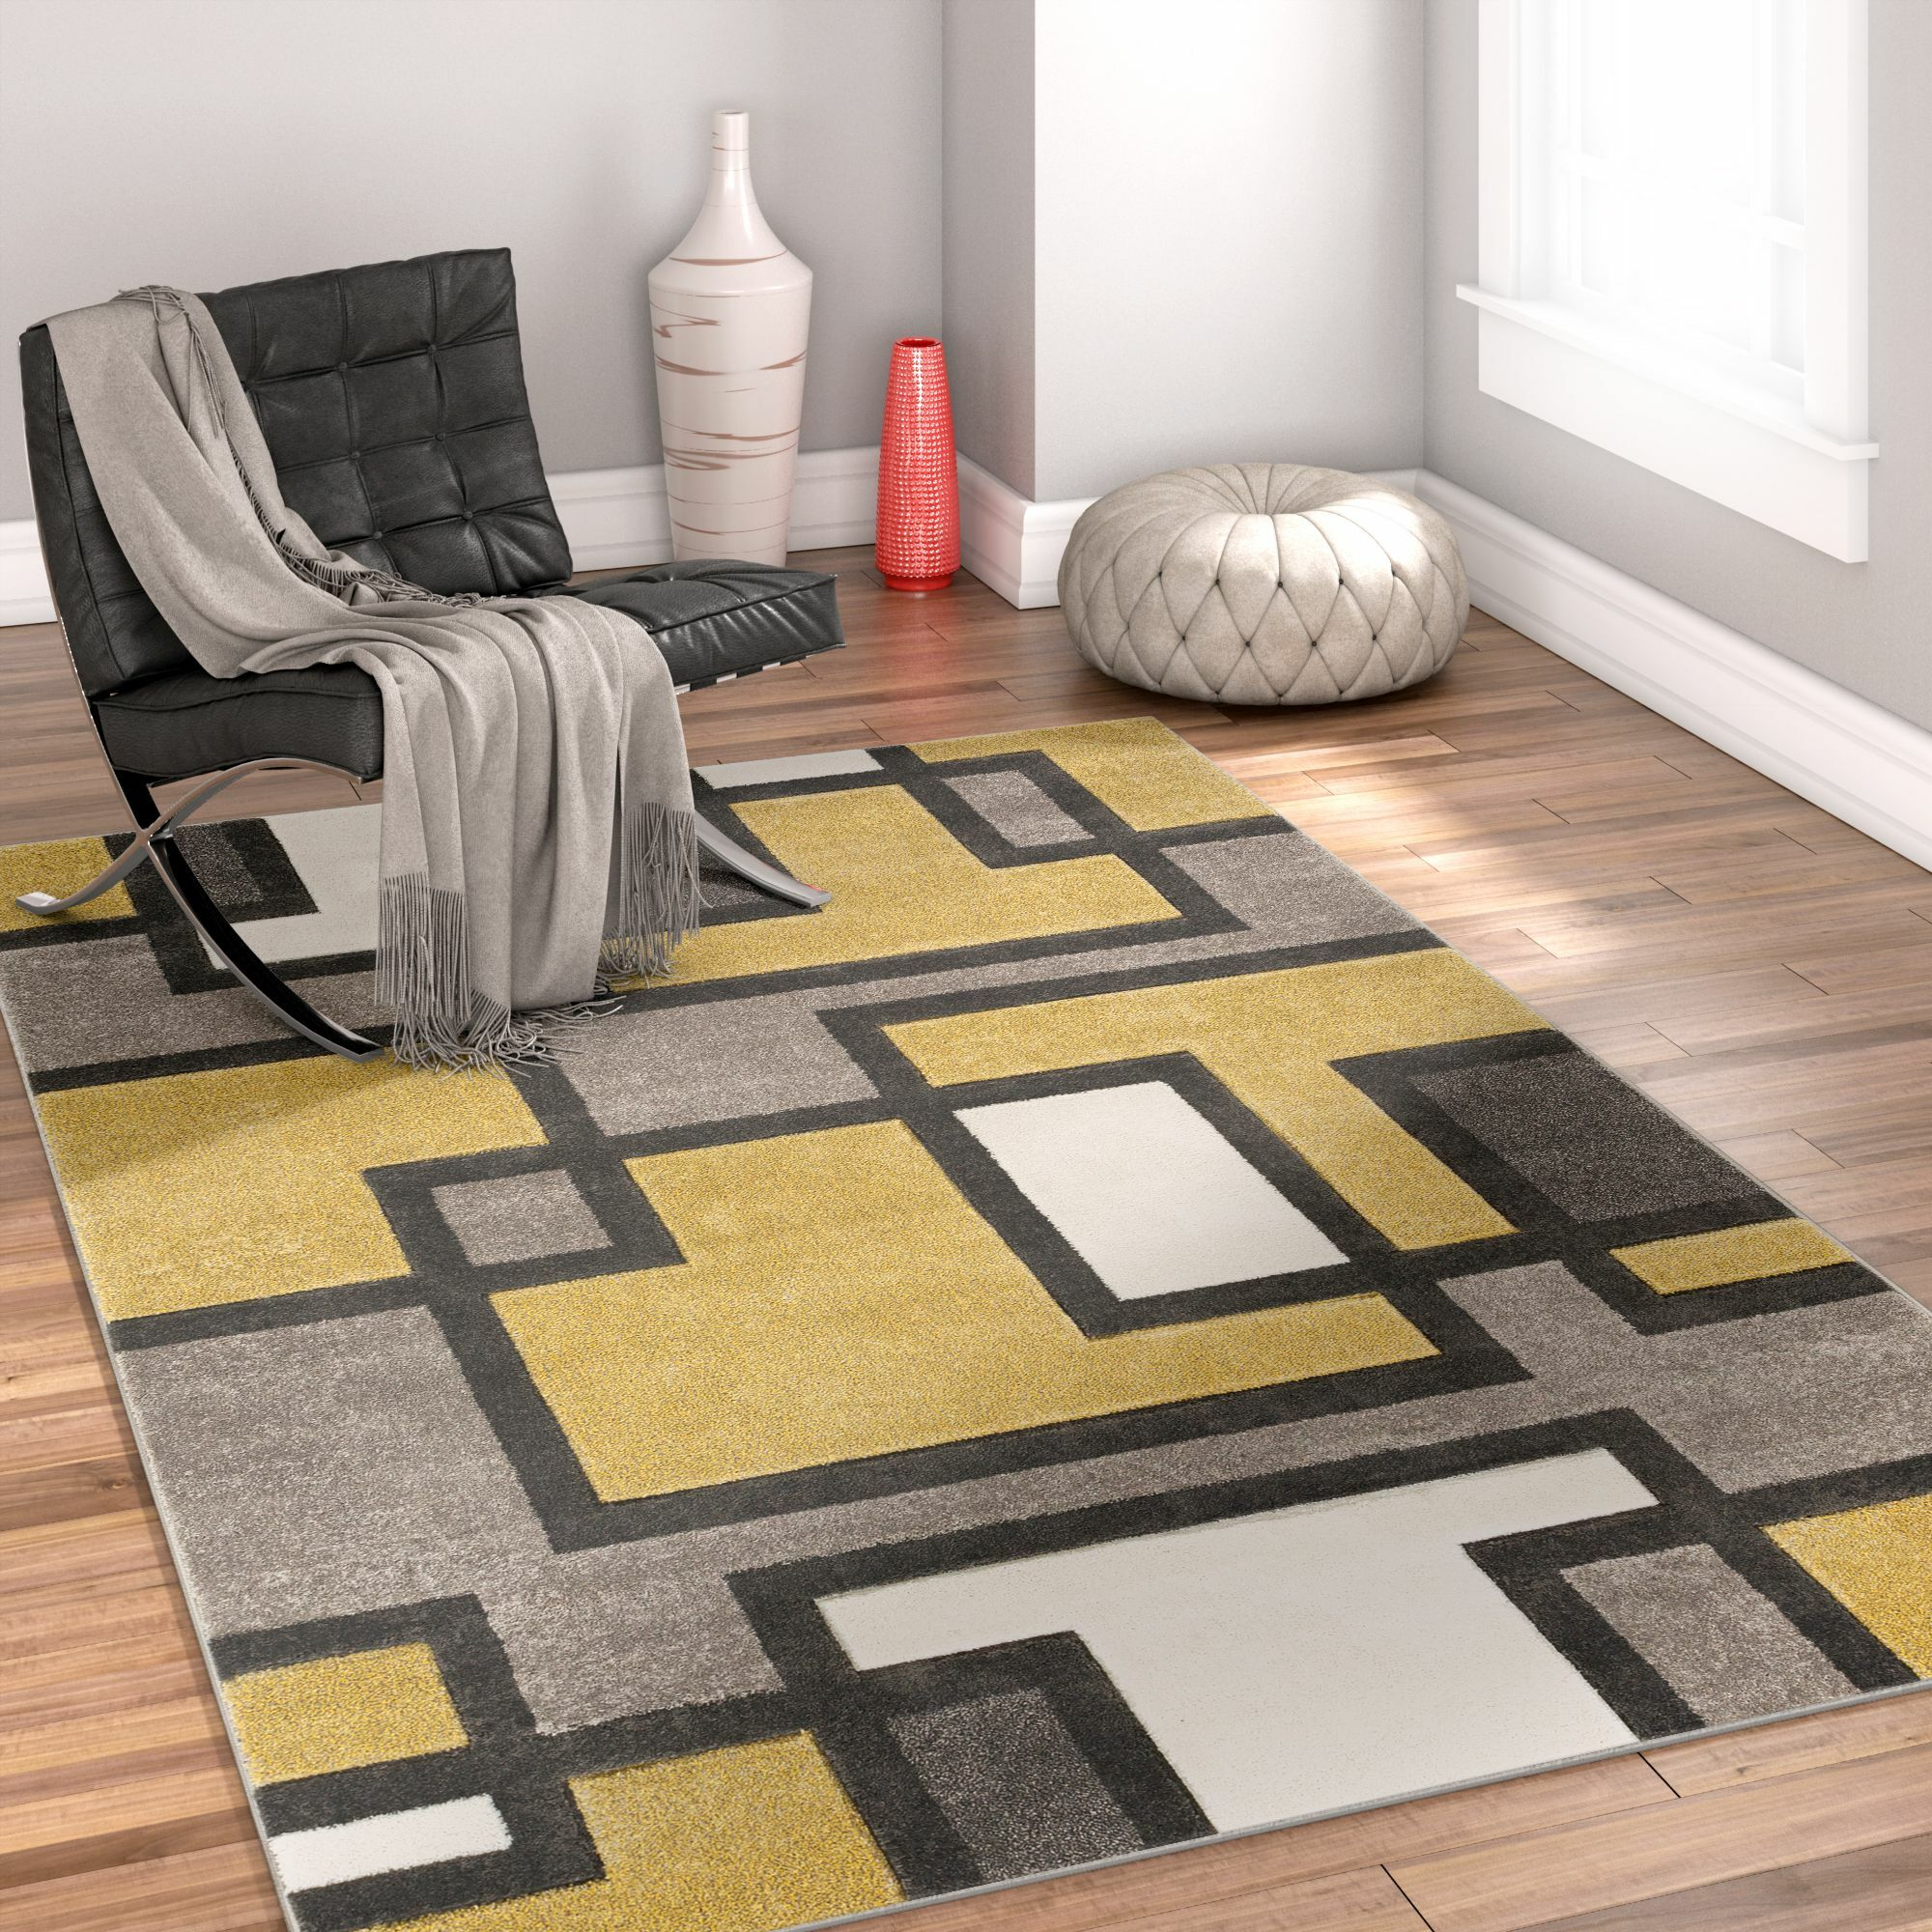 Imagination Square Gold/Gray Area Rug Rug Size: Rectangle 7'10